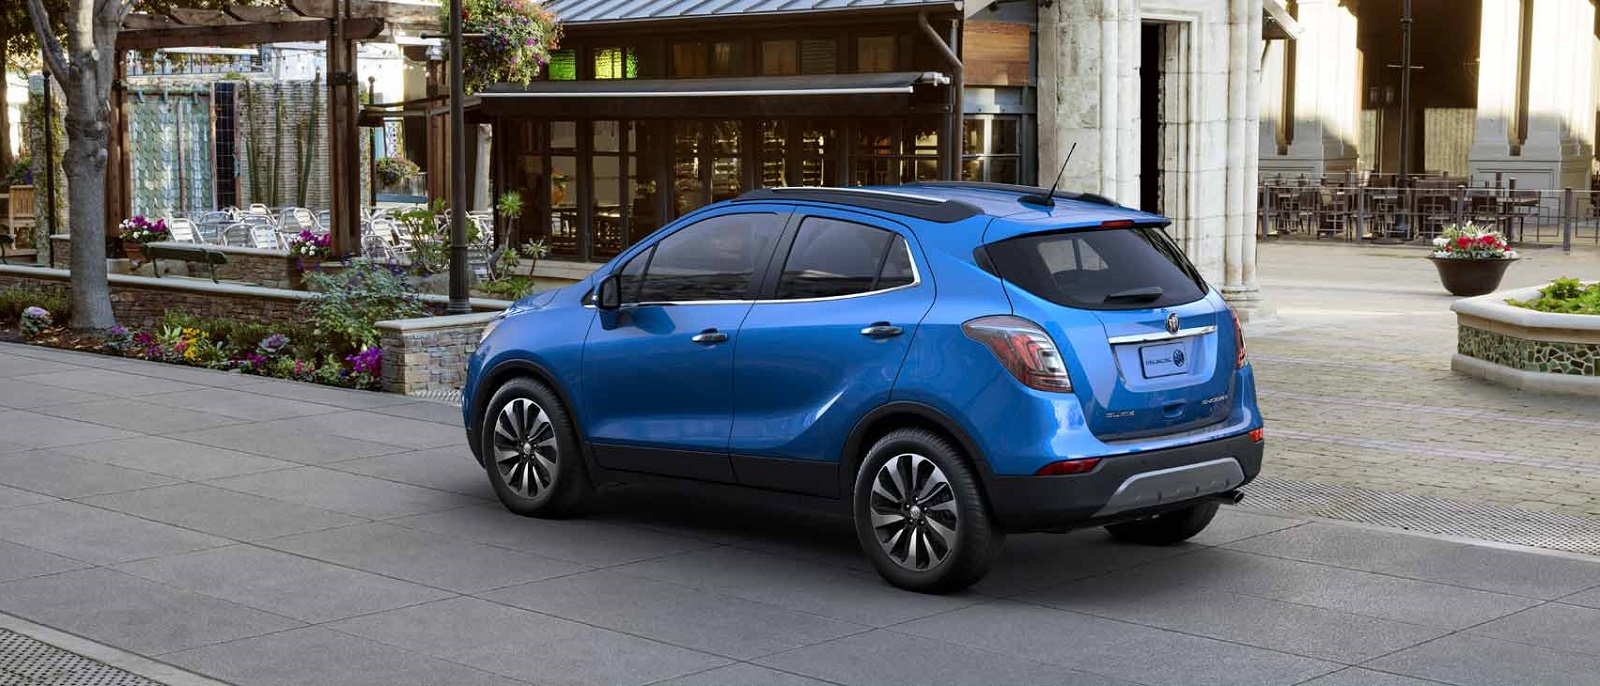 2017 Buick Encore Blue Rear